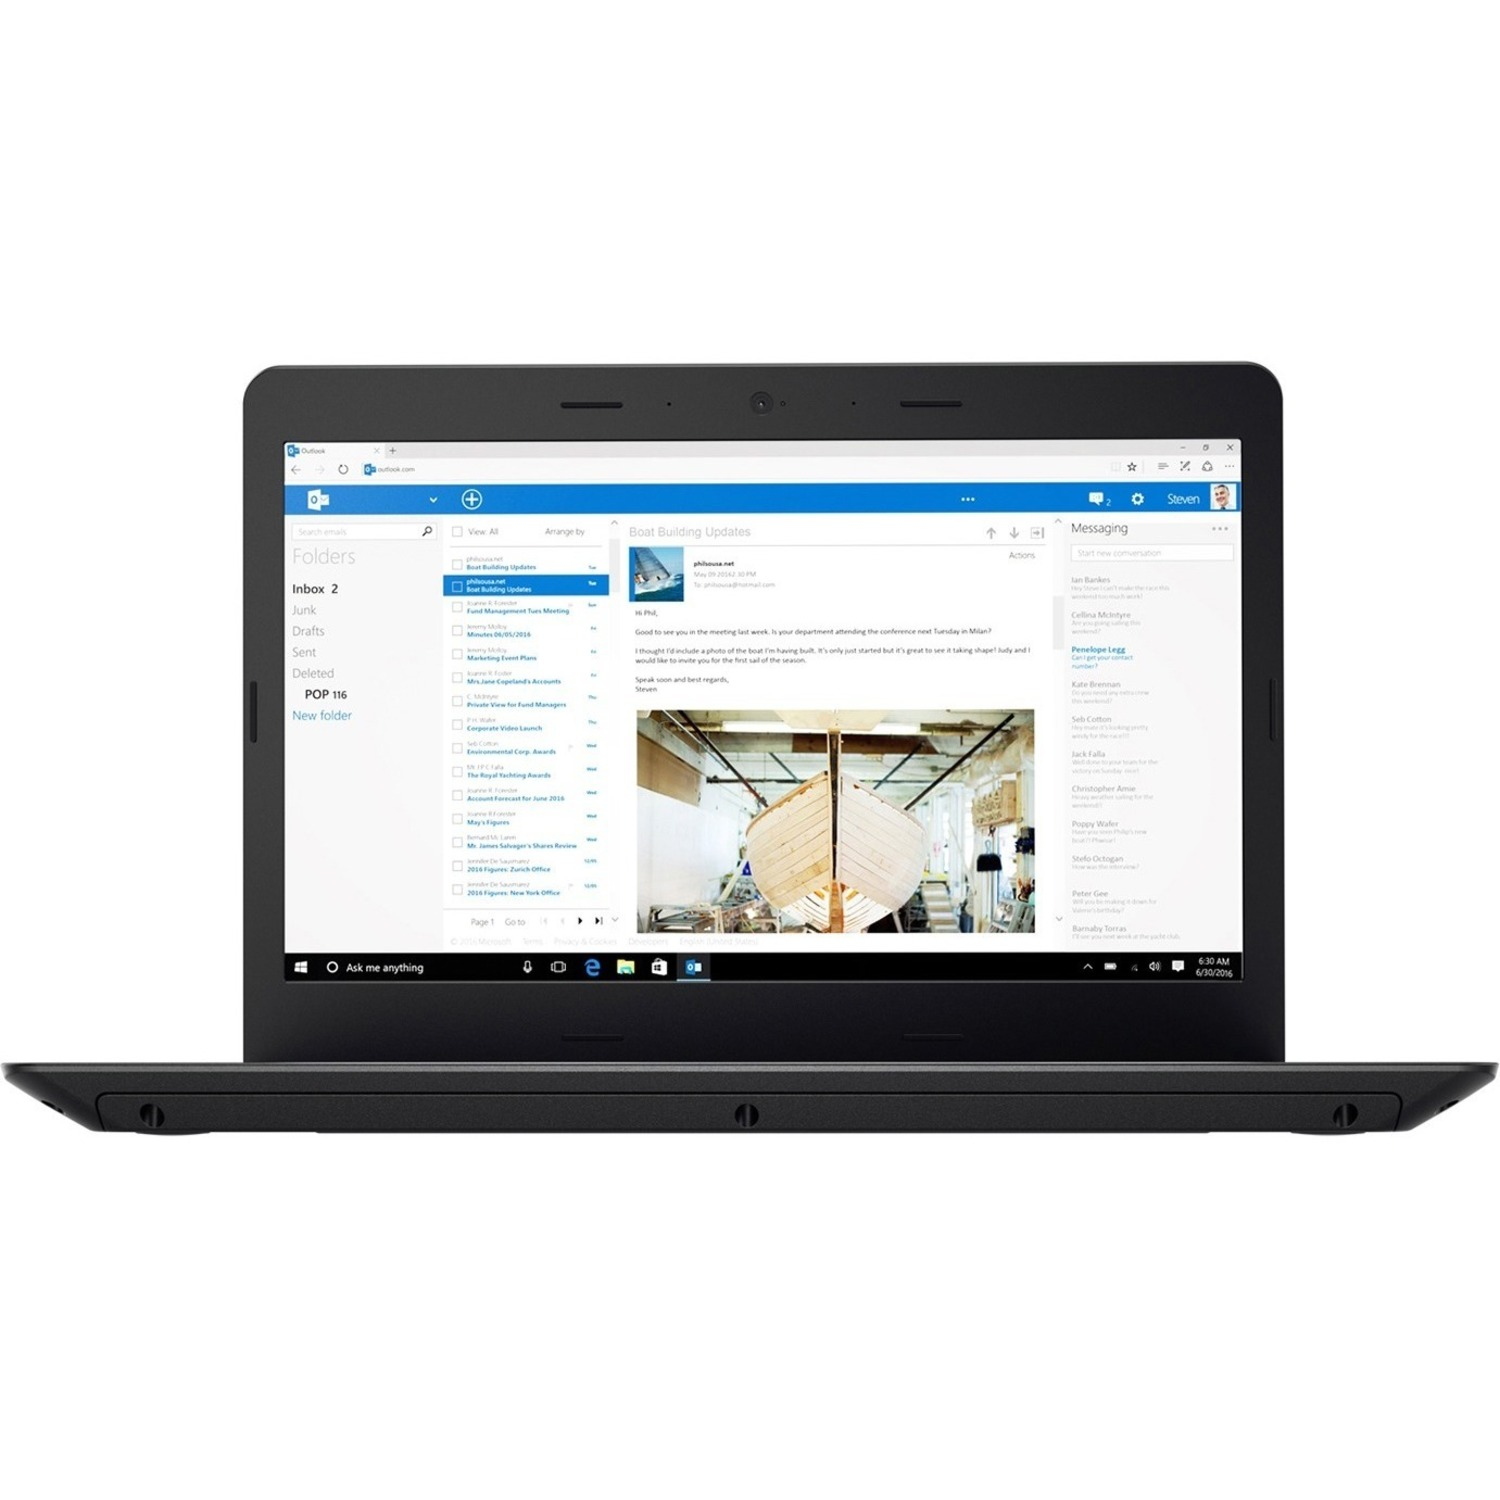 Lenovo ThinkPad E470 20H1006LUK 35.6 cm 14inch LCD Notebook - Intel Core i5 7th Gen i5-7200U Dual-core 2 Core 2.50 GHz - 4 GB DDR4 SDRAM - 500 GB HDD - Windows 10